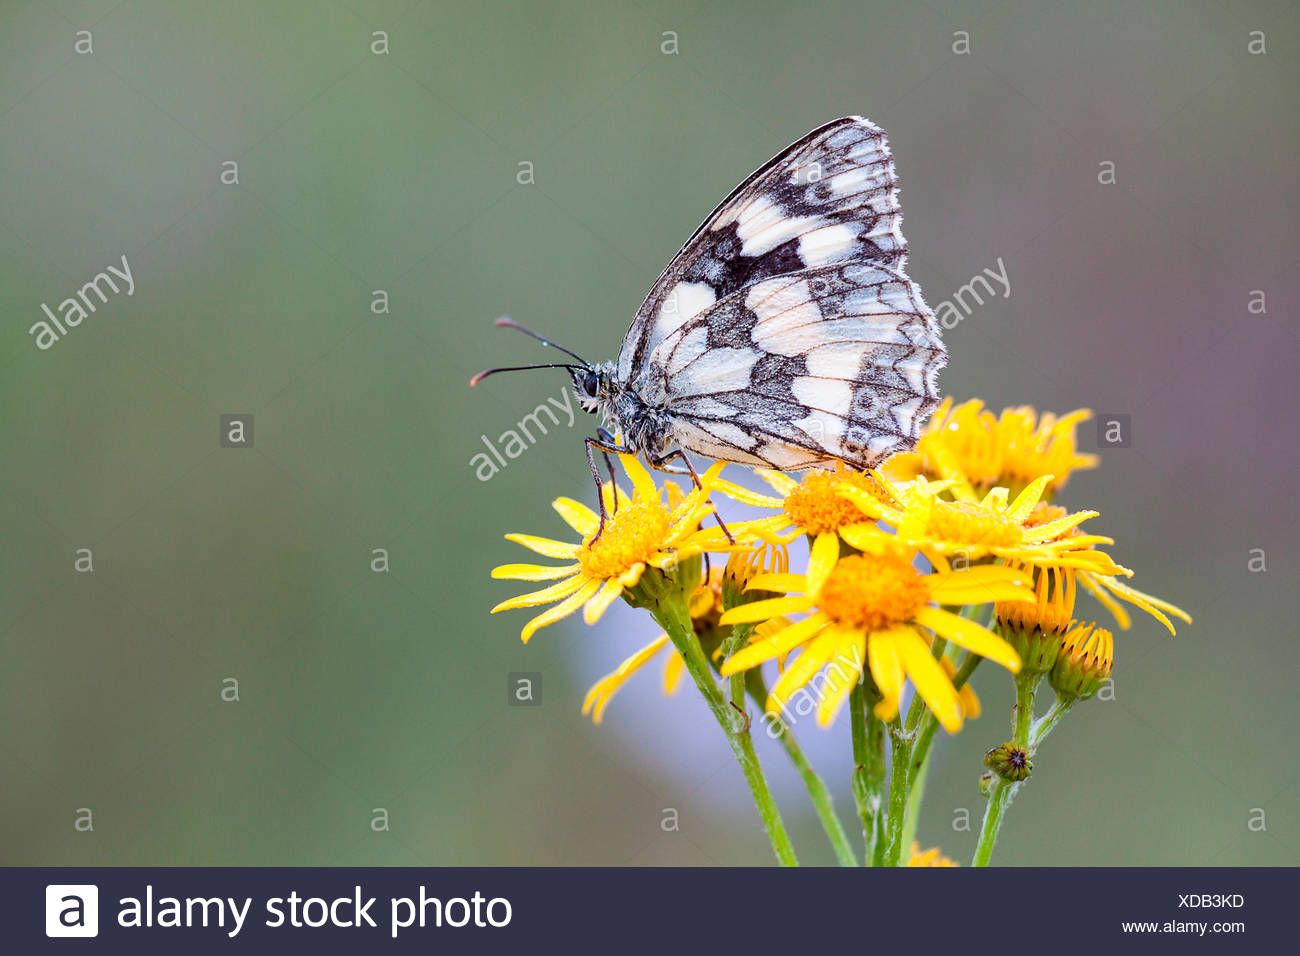 Marbled White (Melanargia galathea) on Ragwort (Senecio jacobaea), North Hesse, Hesse, Germany - Stock Image